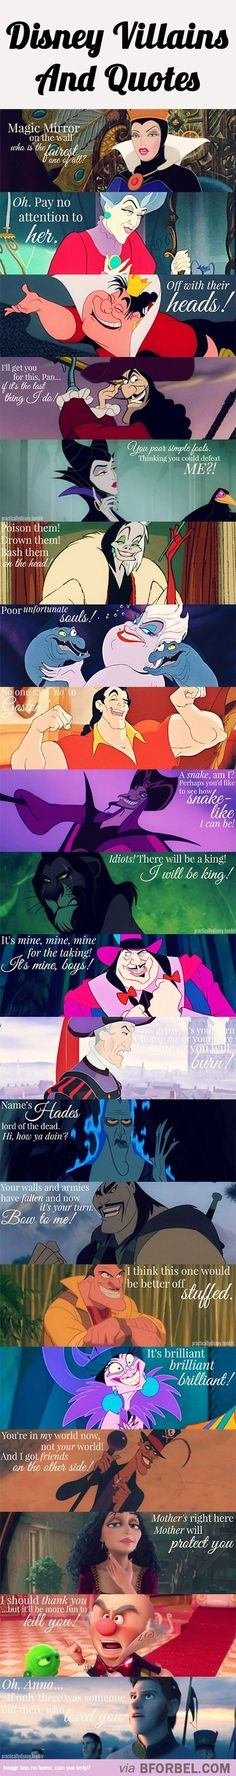 20 Disney Villains And Their Infamous Quotes. Can I just say I heard every single one of their voices reading the quotes in my head